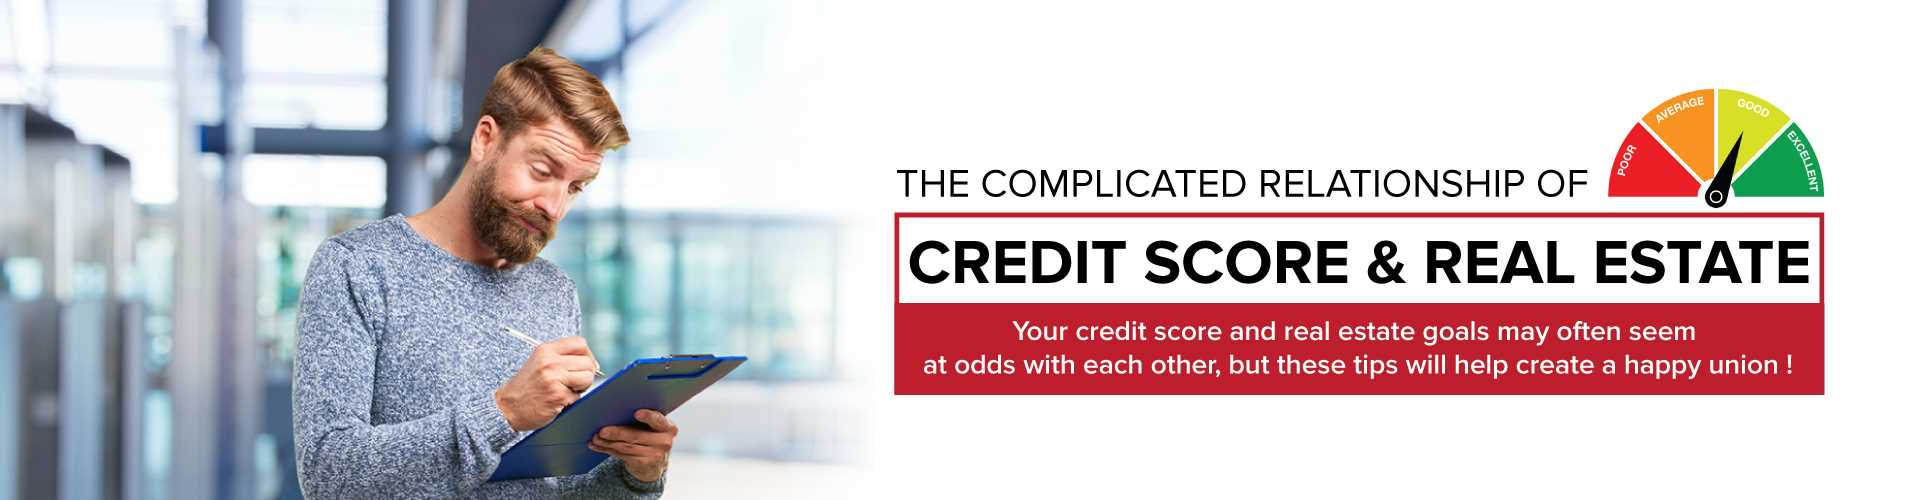 Credit Score and Real Estate